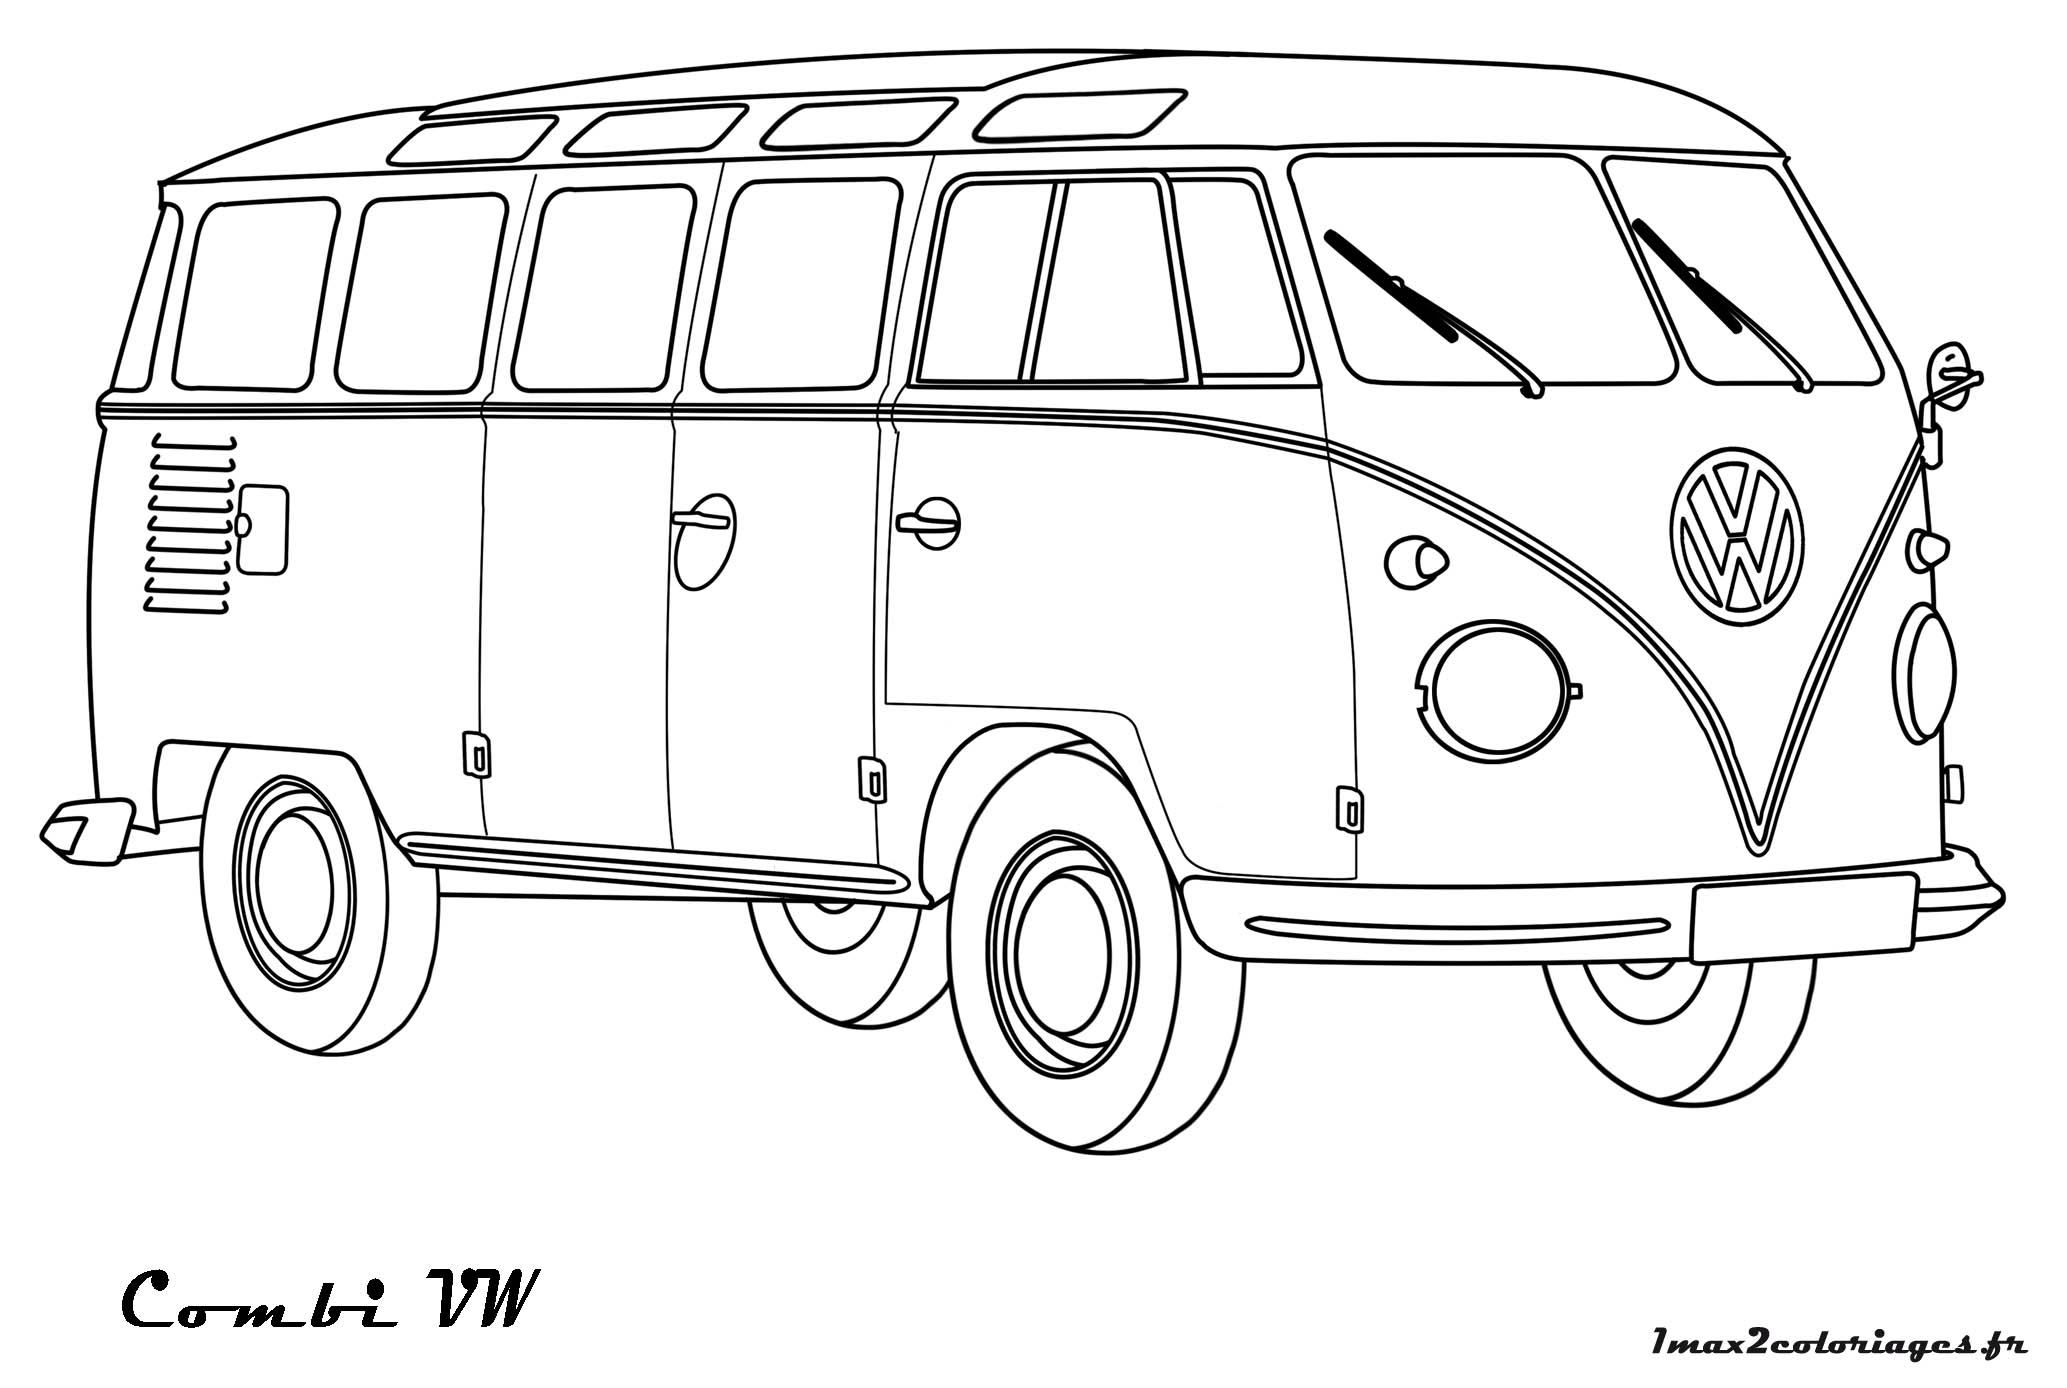 Combi Volkswagen on Volkswagen Beetle Drawing